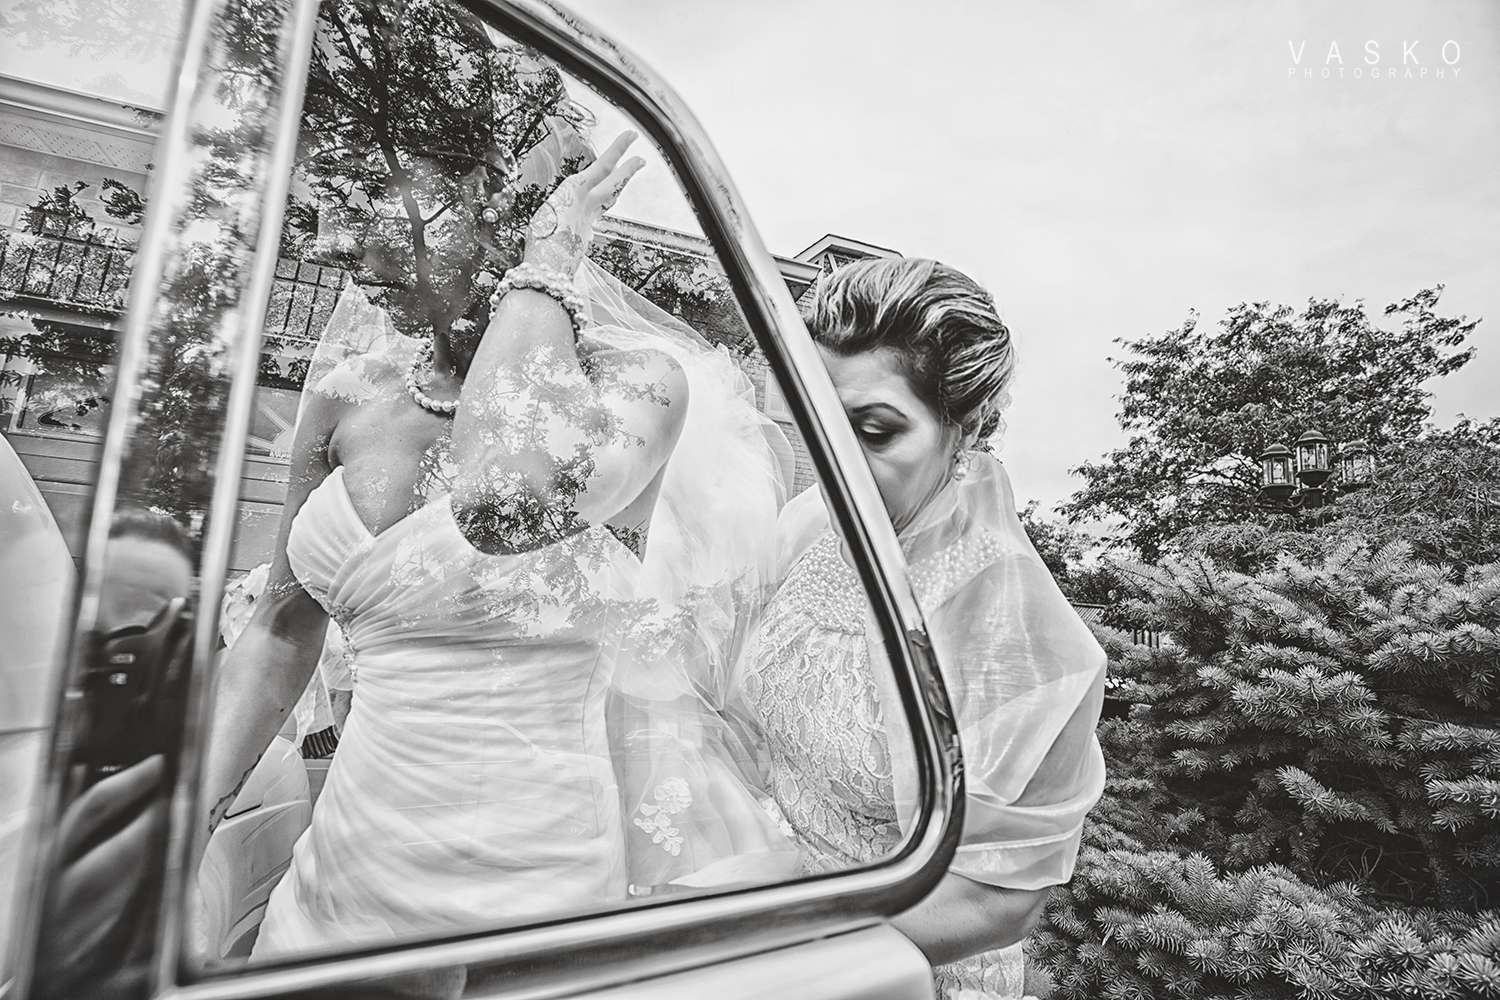 vasko photography wedding photographer toronto